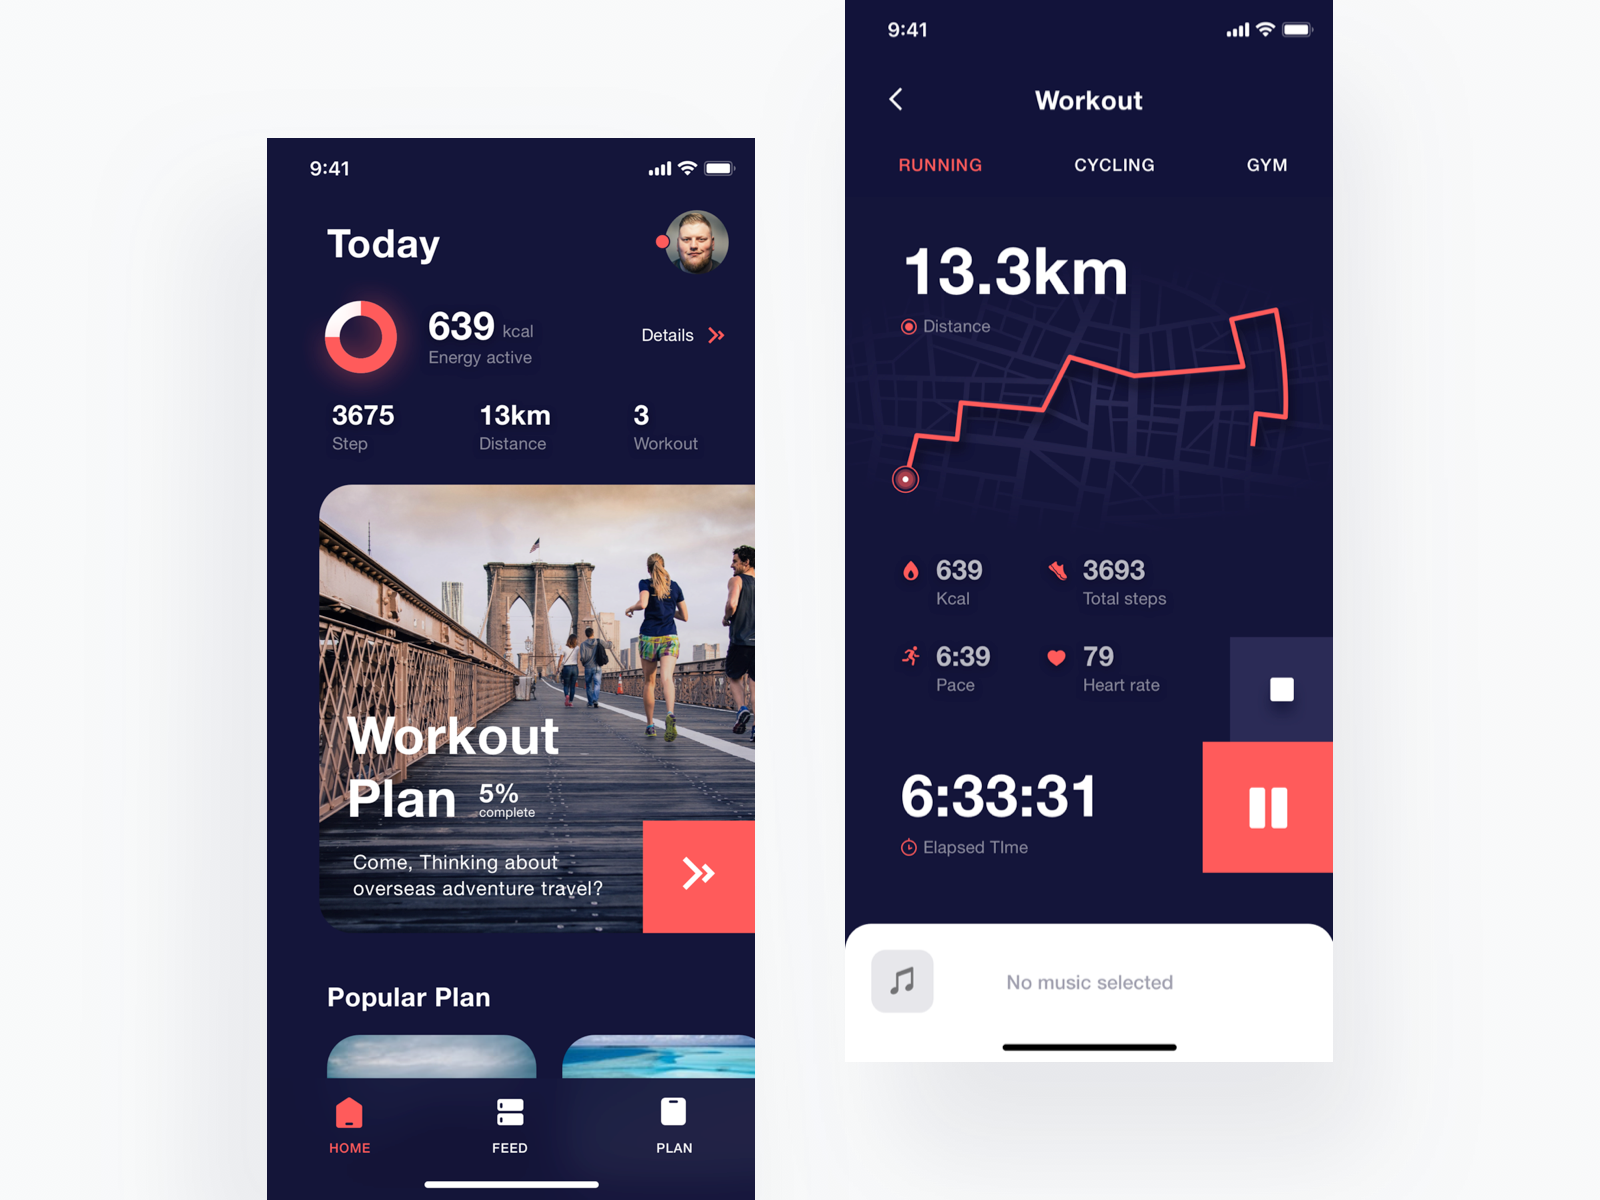 Workout App Exploration music workout track stats iphone x activity heart rate health fitness map cycling gym sport running app